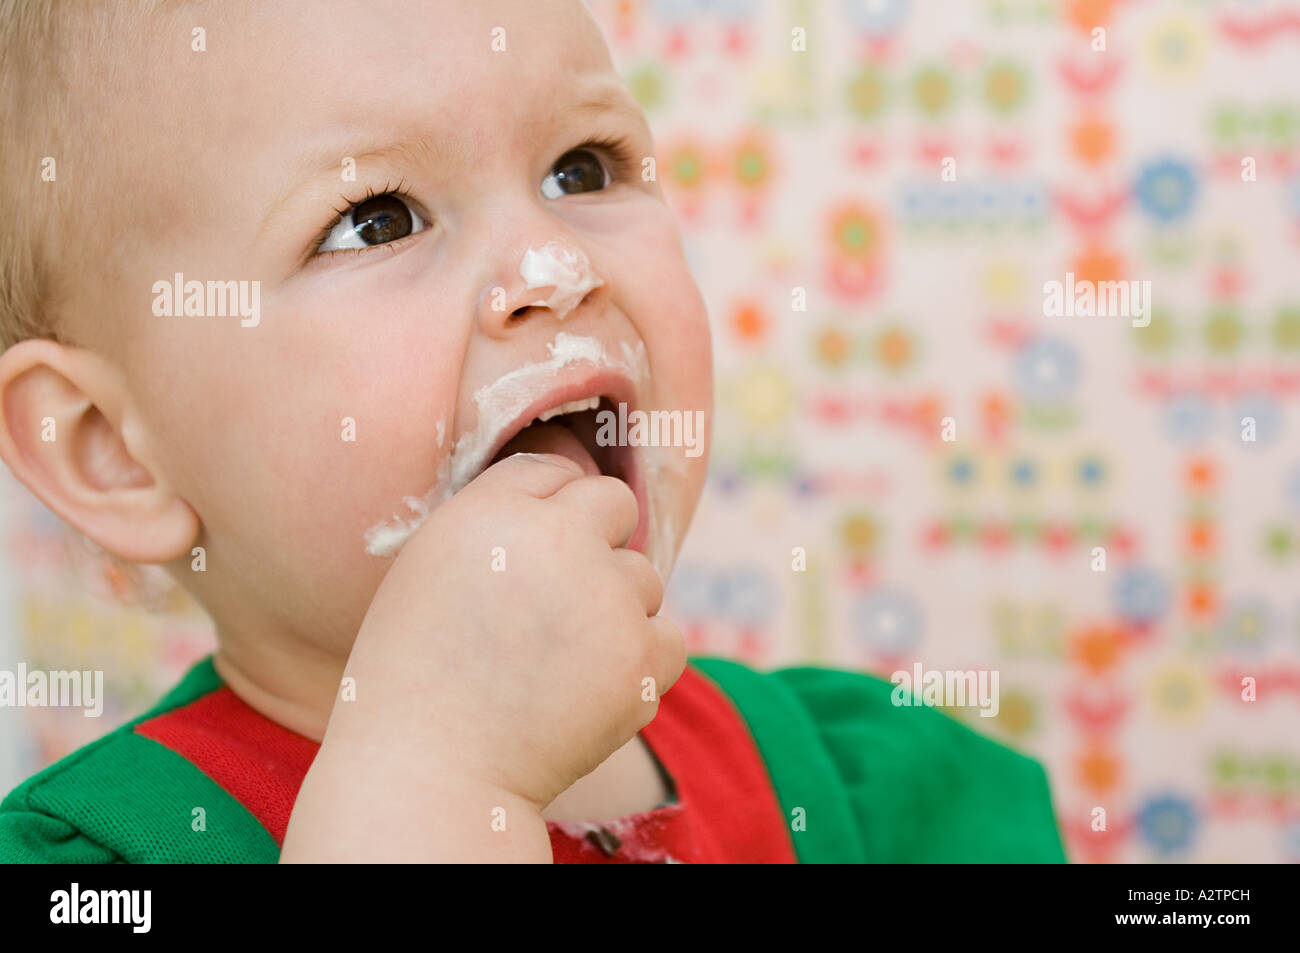 Baby with a messy face - Stock Image